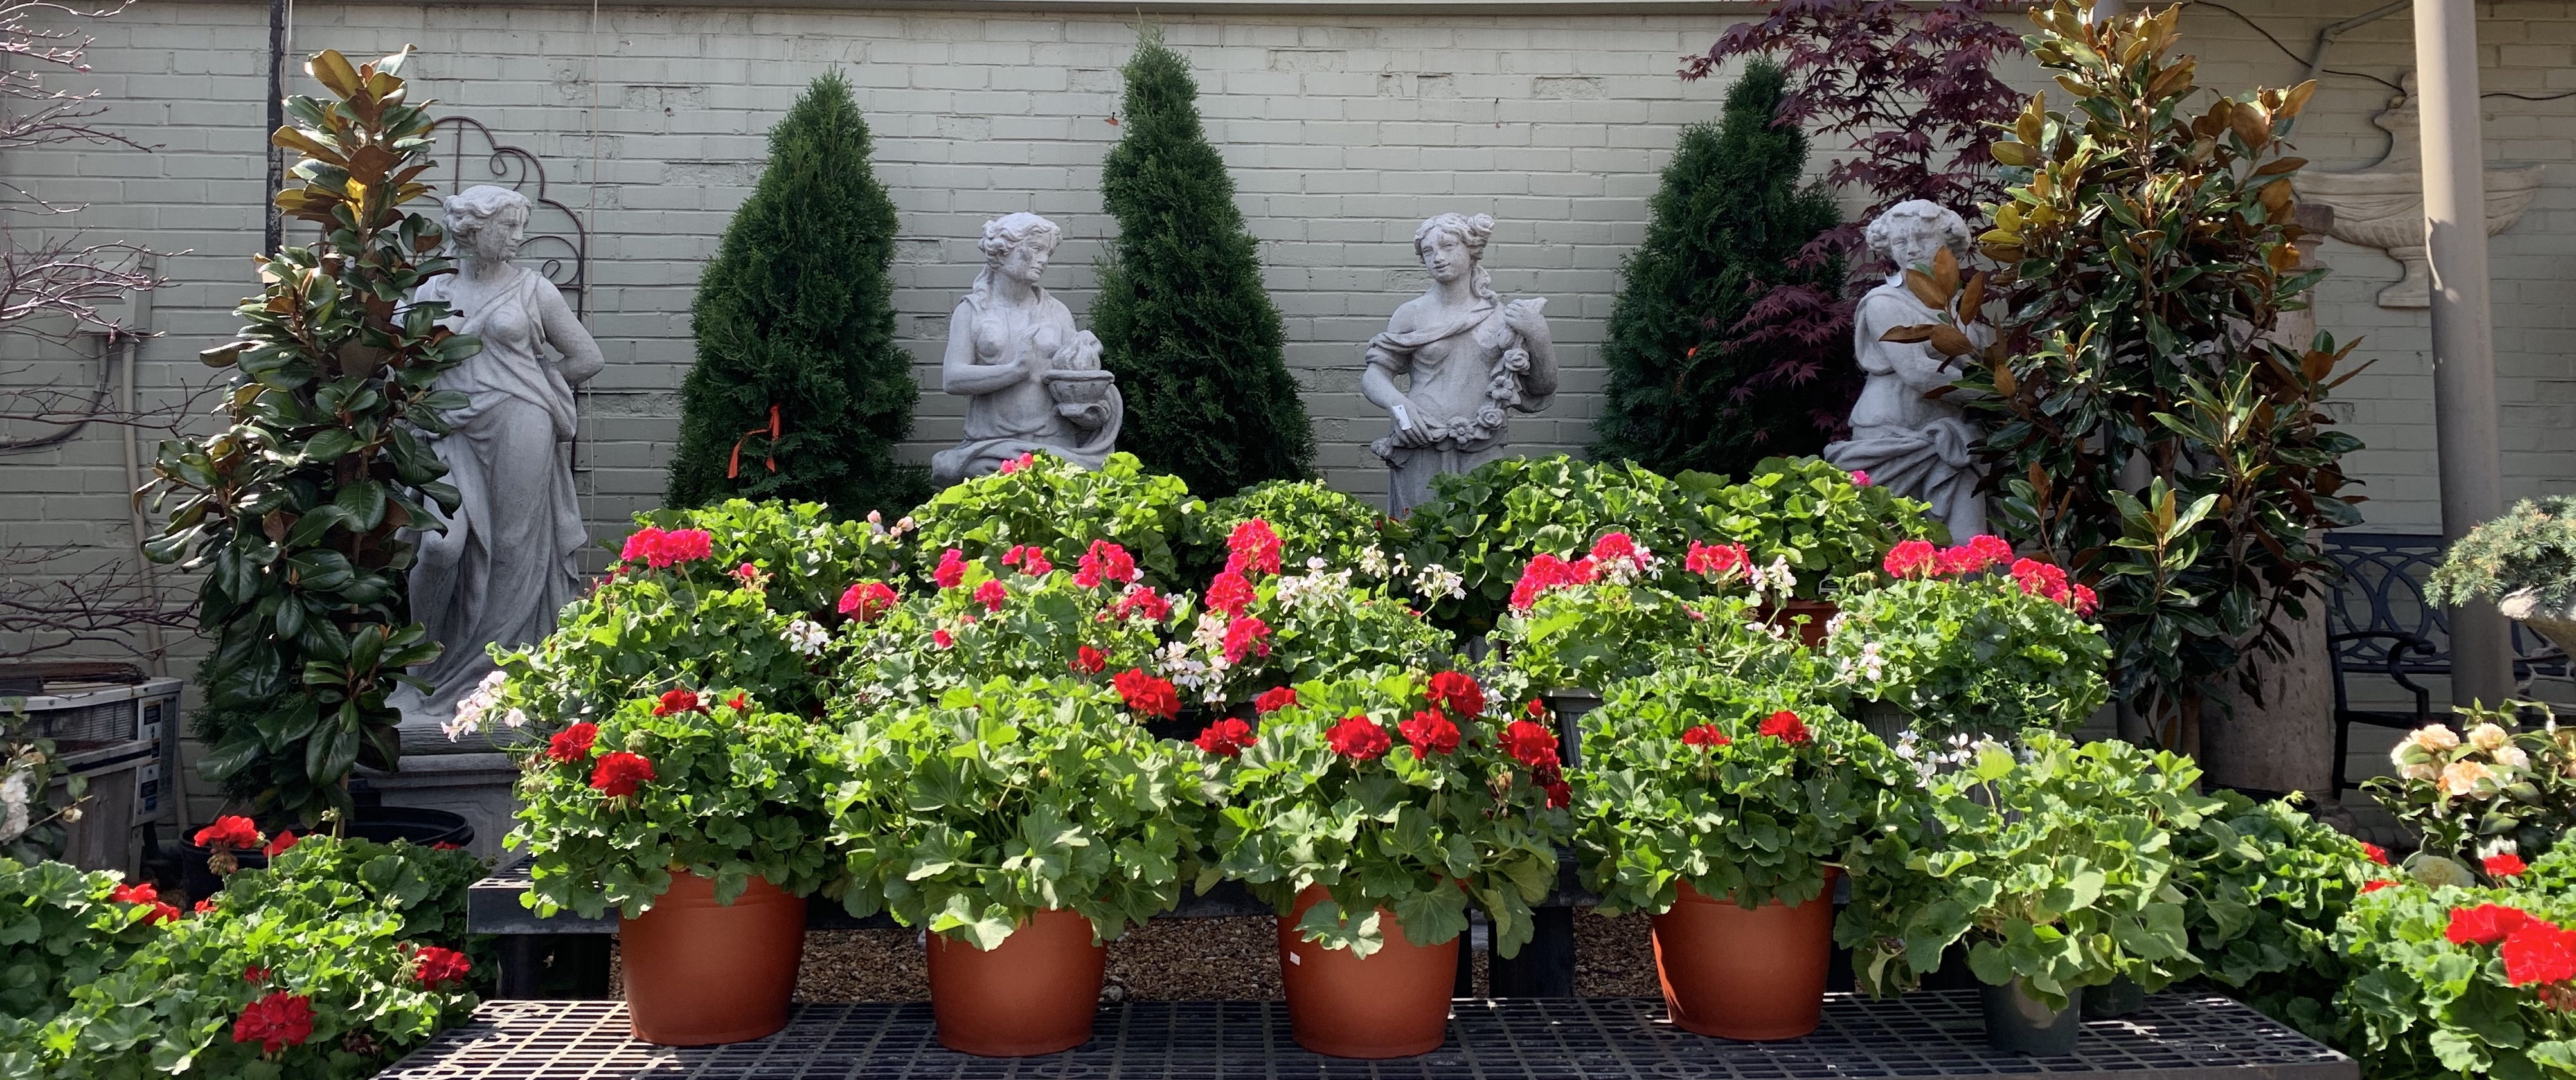 Brooks & Collier, Plants, Annuals, Statues